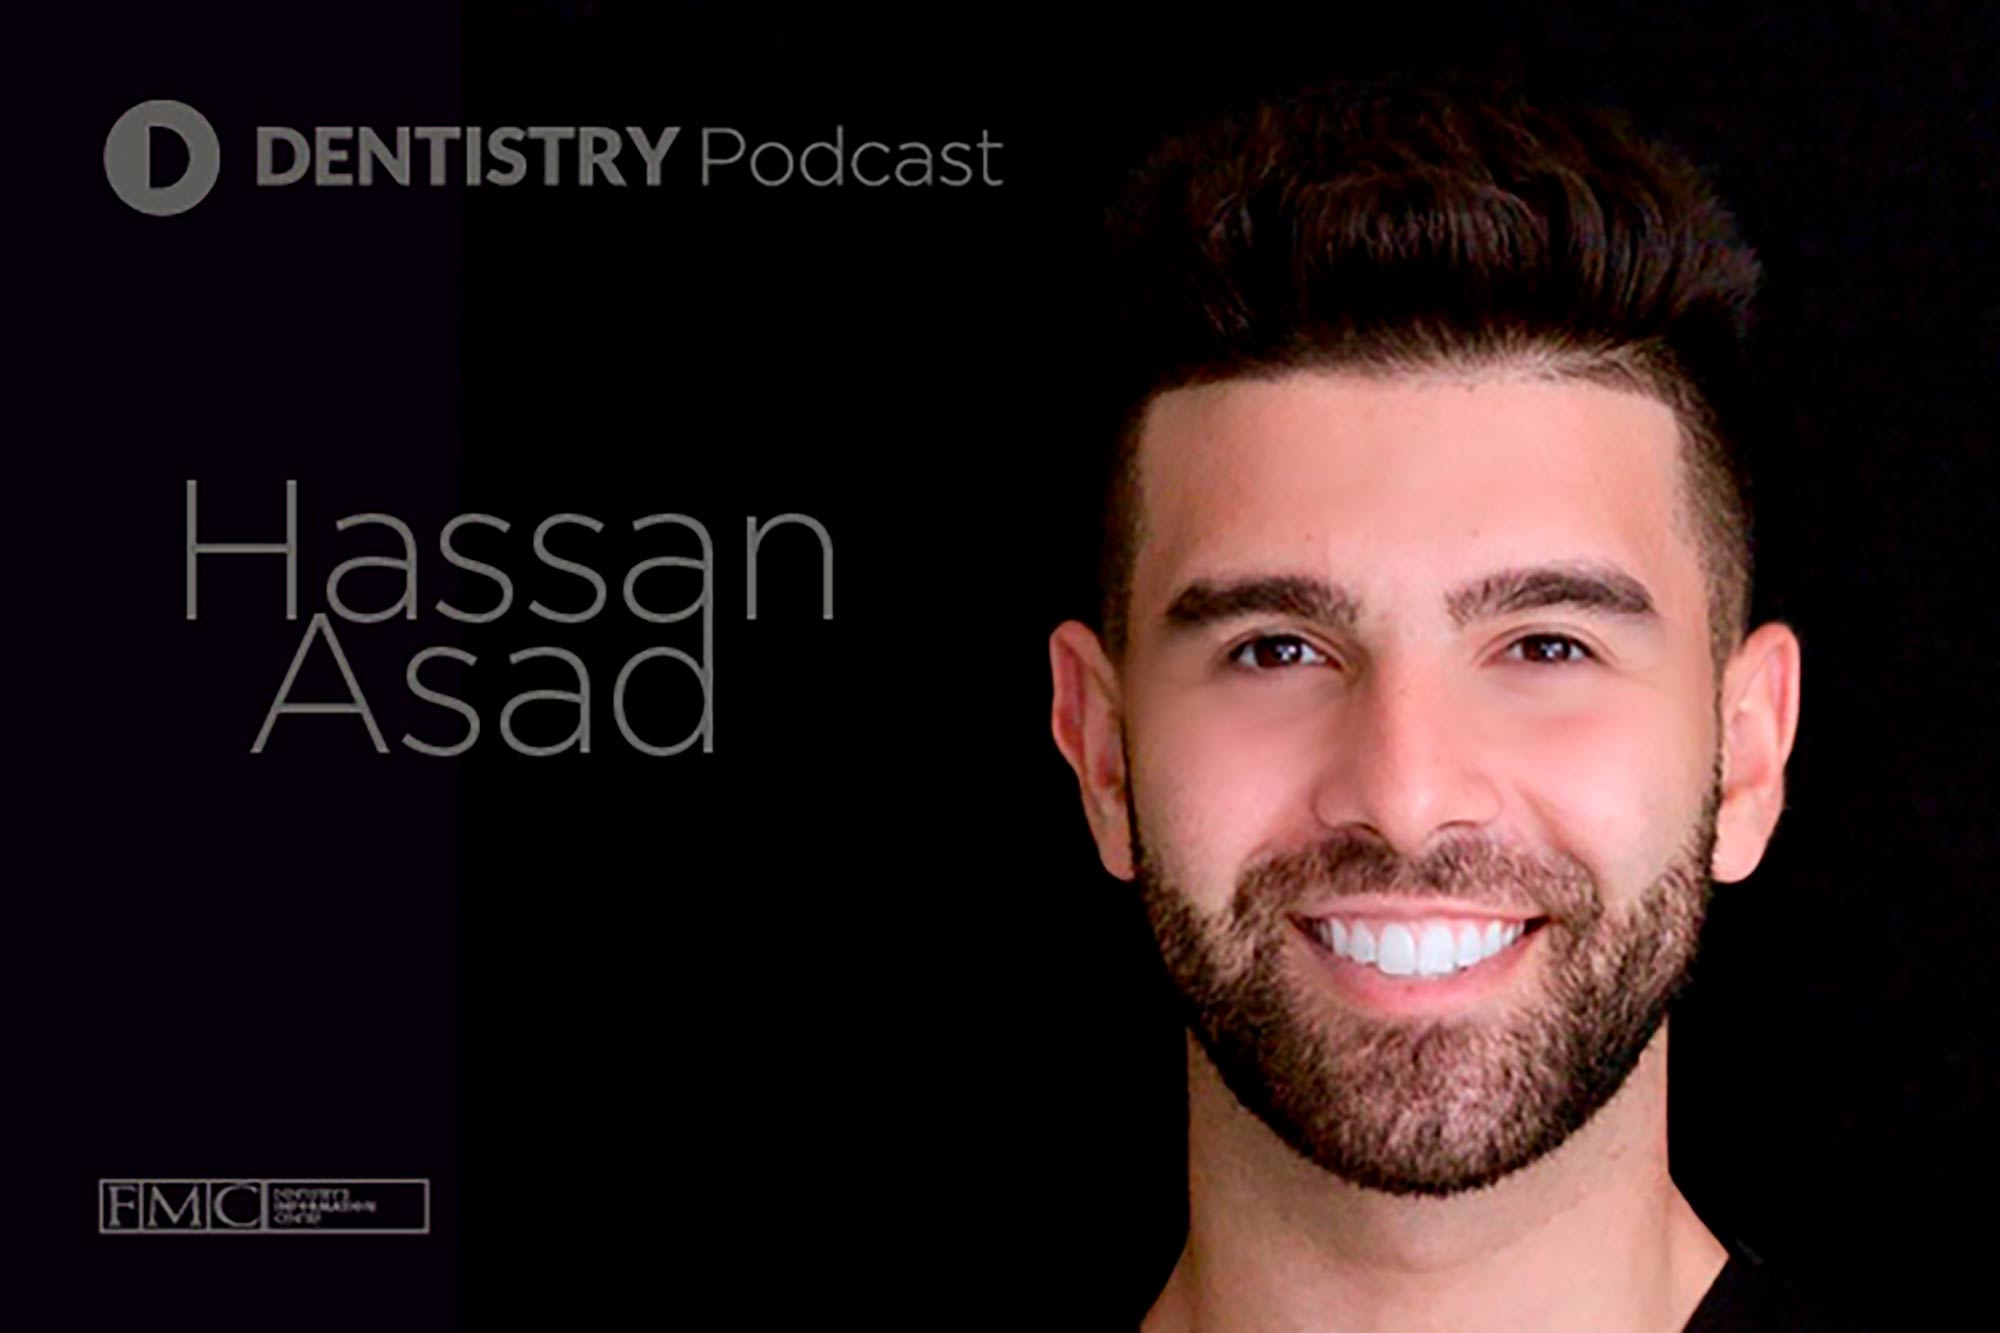 In the tenth episode, we chat to Hassan Asad – also known as the Bearded Tooth Fairy